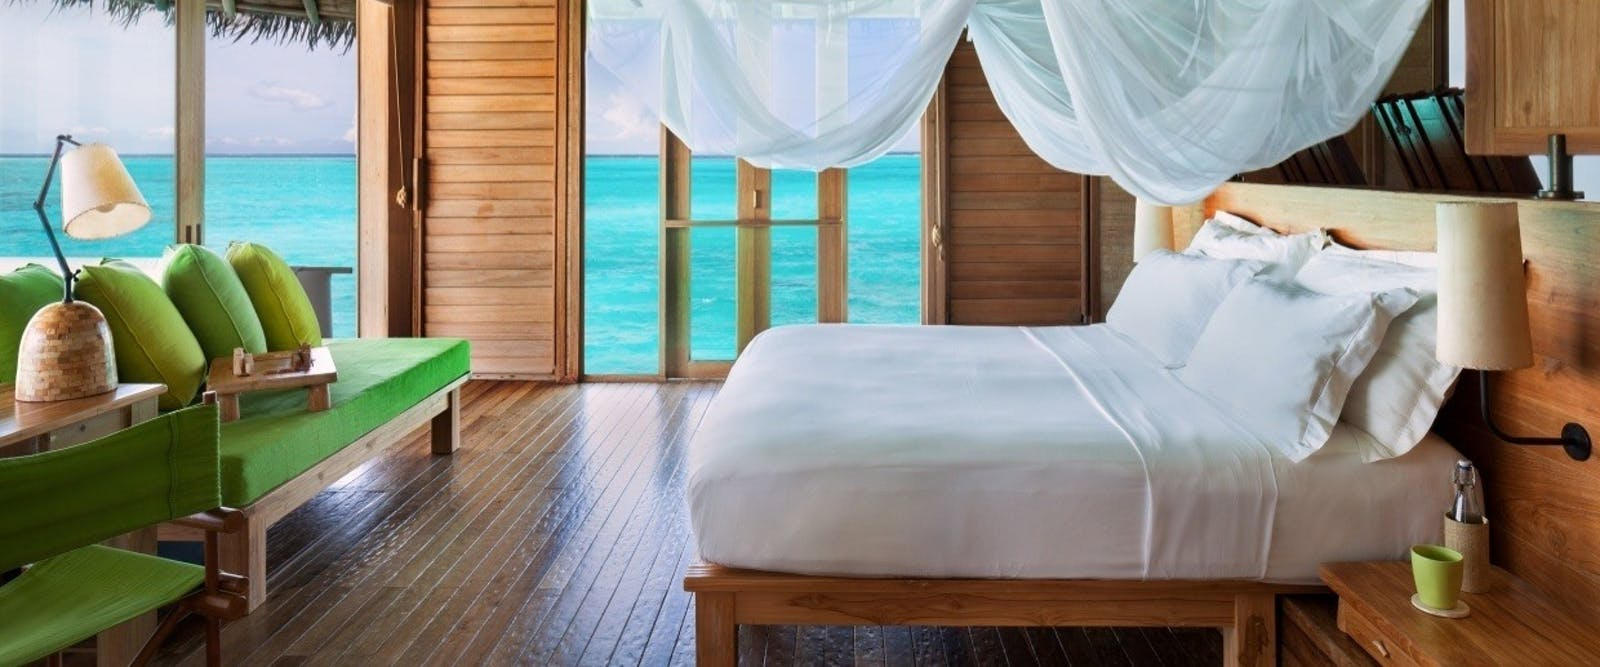 Laamu Water Villa with Pool at Six Senses Laamu, Maldives, Indian Ocean